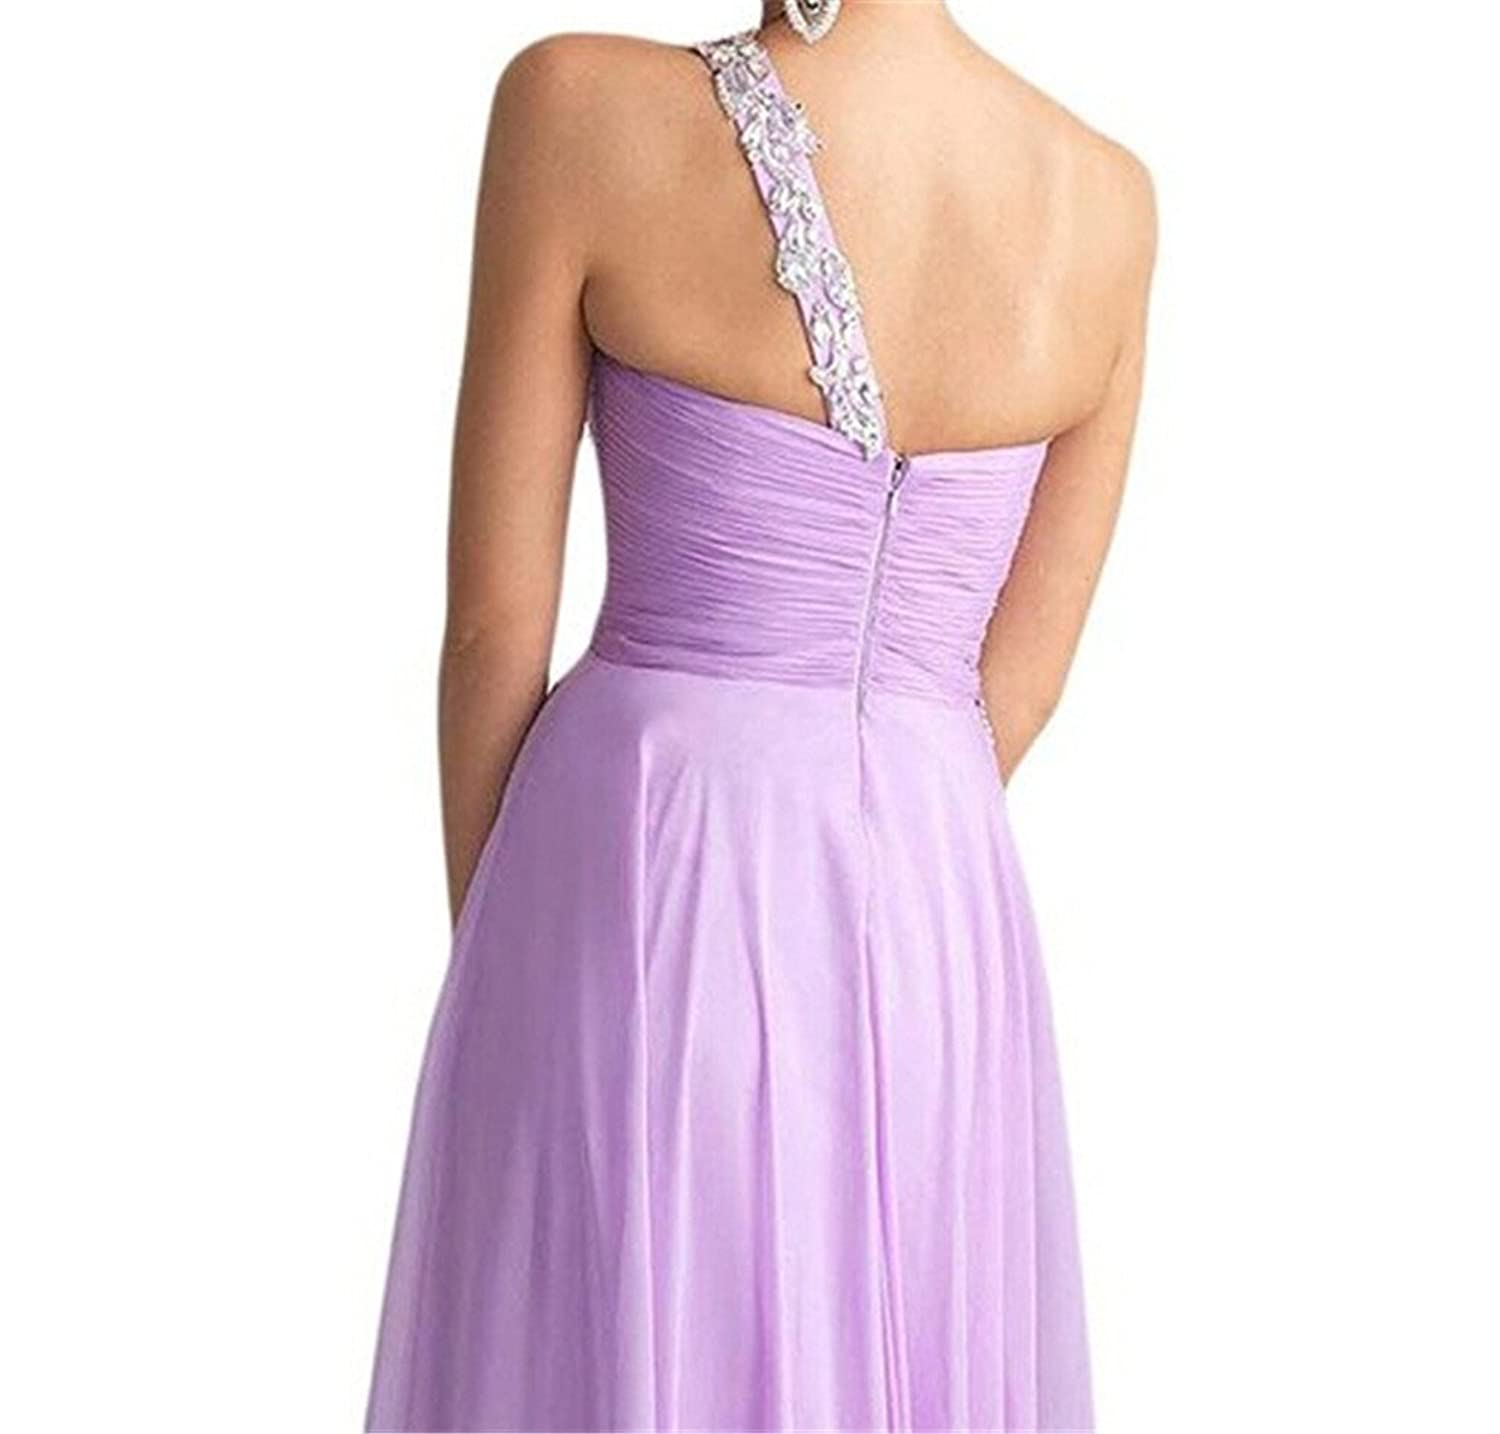 AngelDragon One-Shoulder Floral Embellished Bridesmaid Party Dress Ball Gown